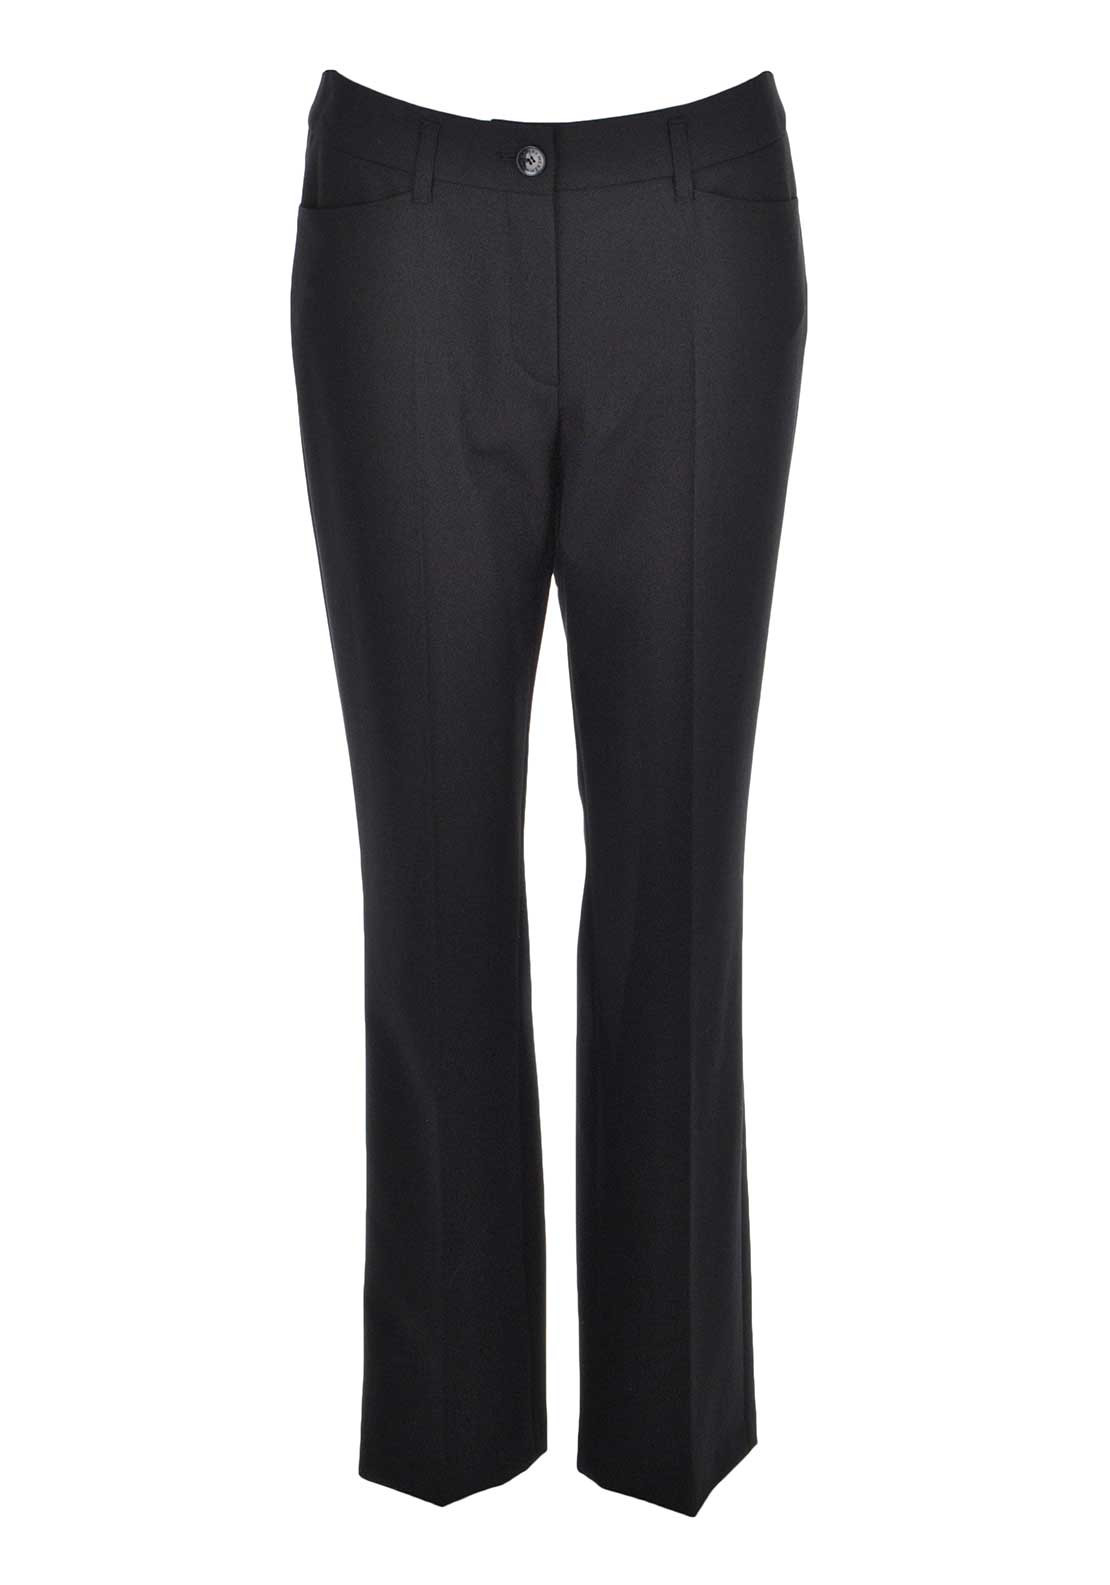 Gerry Weber Pamela Feminine Fit Trouser, Black